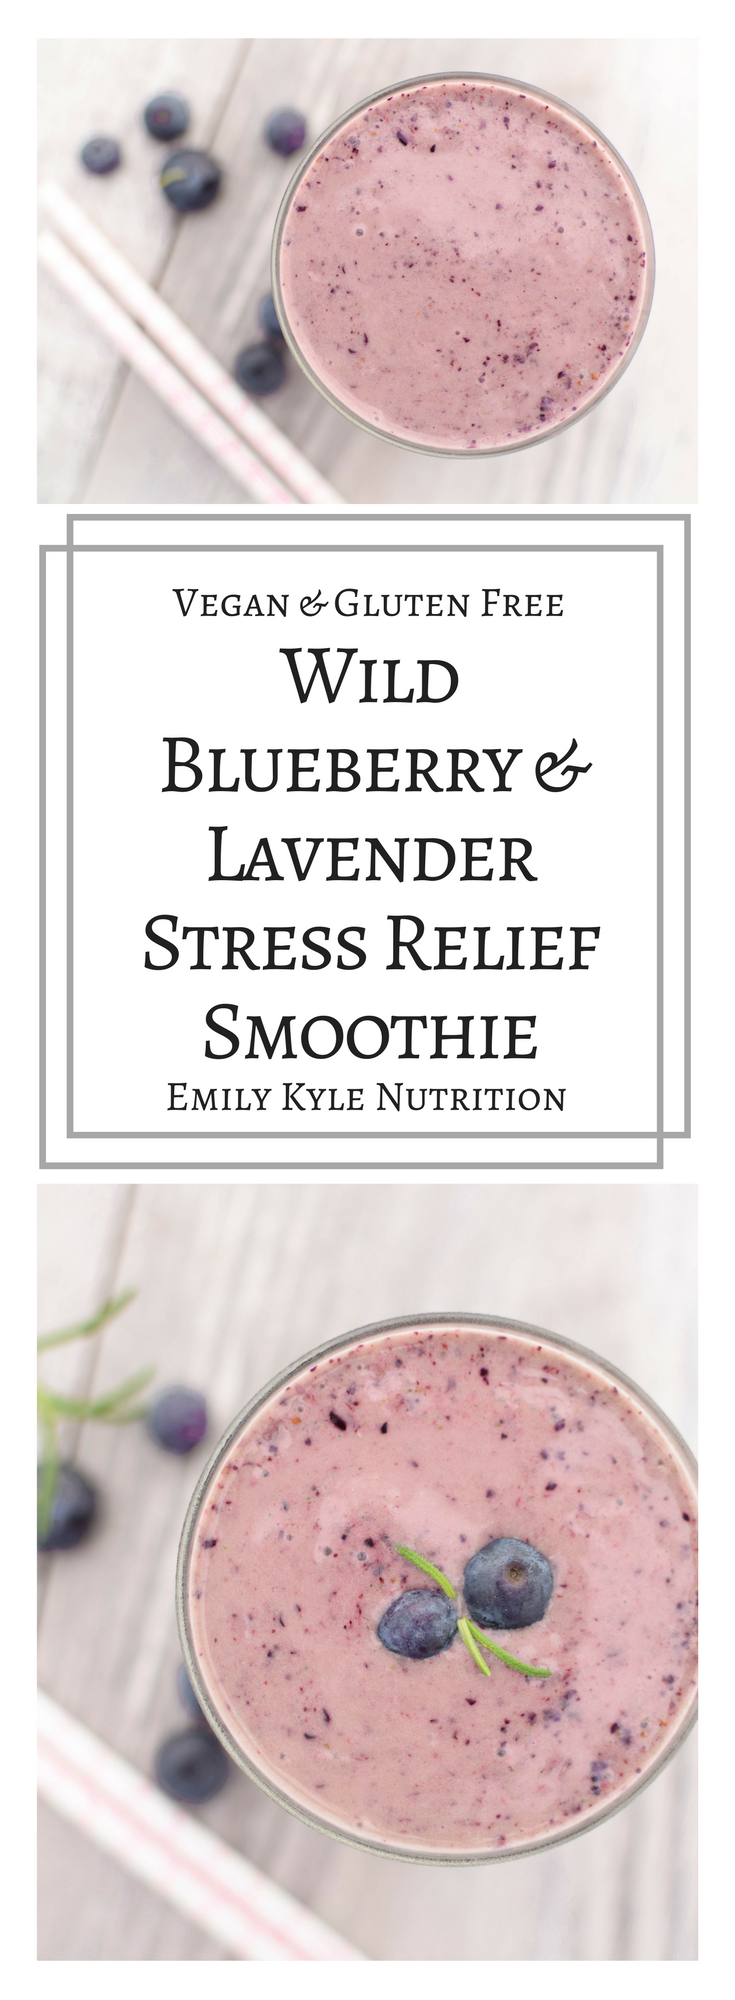 Take a moment to whip up this Wild Blueberry & Lavender Smoothie to enjoy a few minutes of stress relief from these amazing all natural, plant-based ingredients that will help to calm your mind, soothe your body, and relax your soul. | @EmKyleNutrition